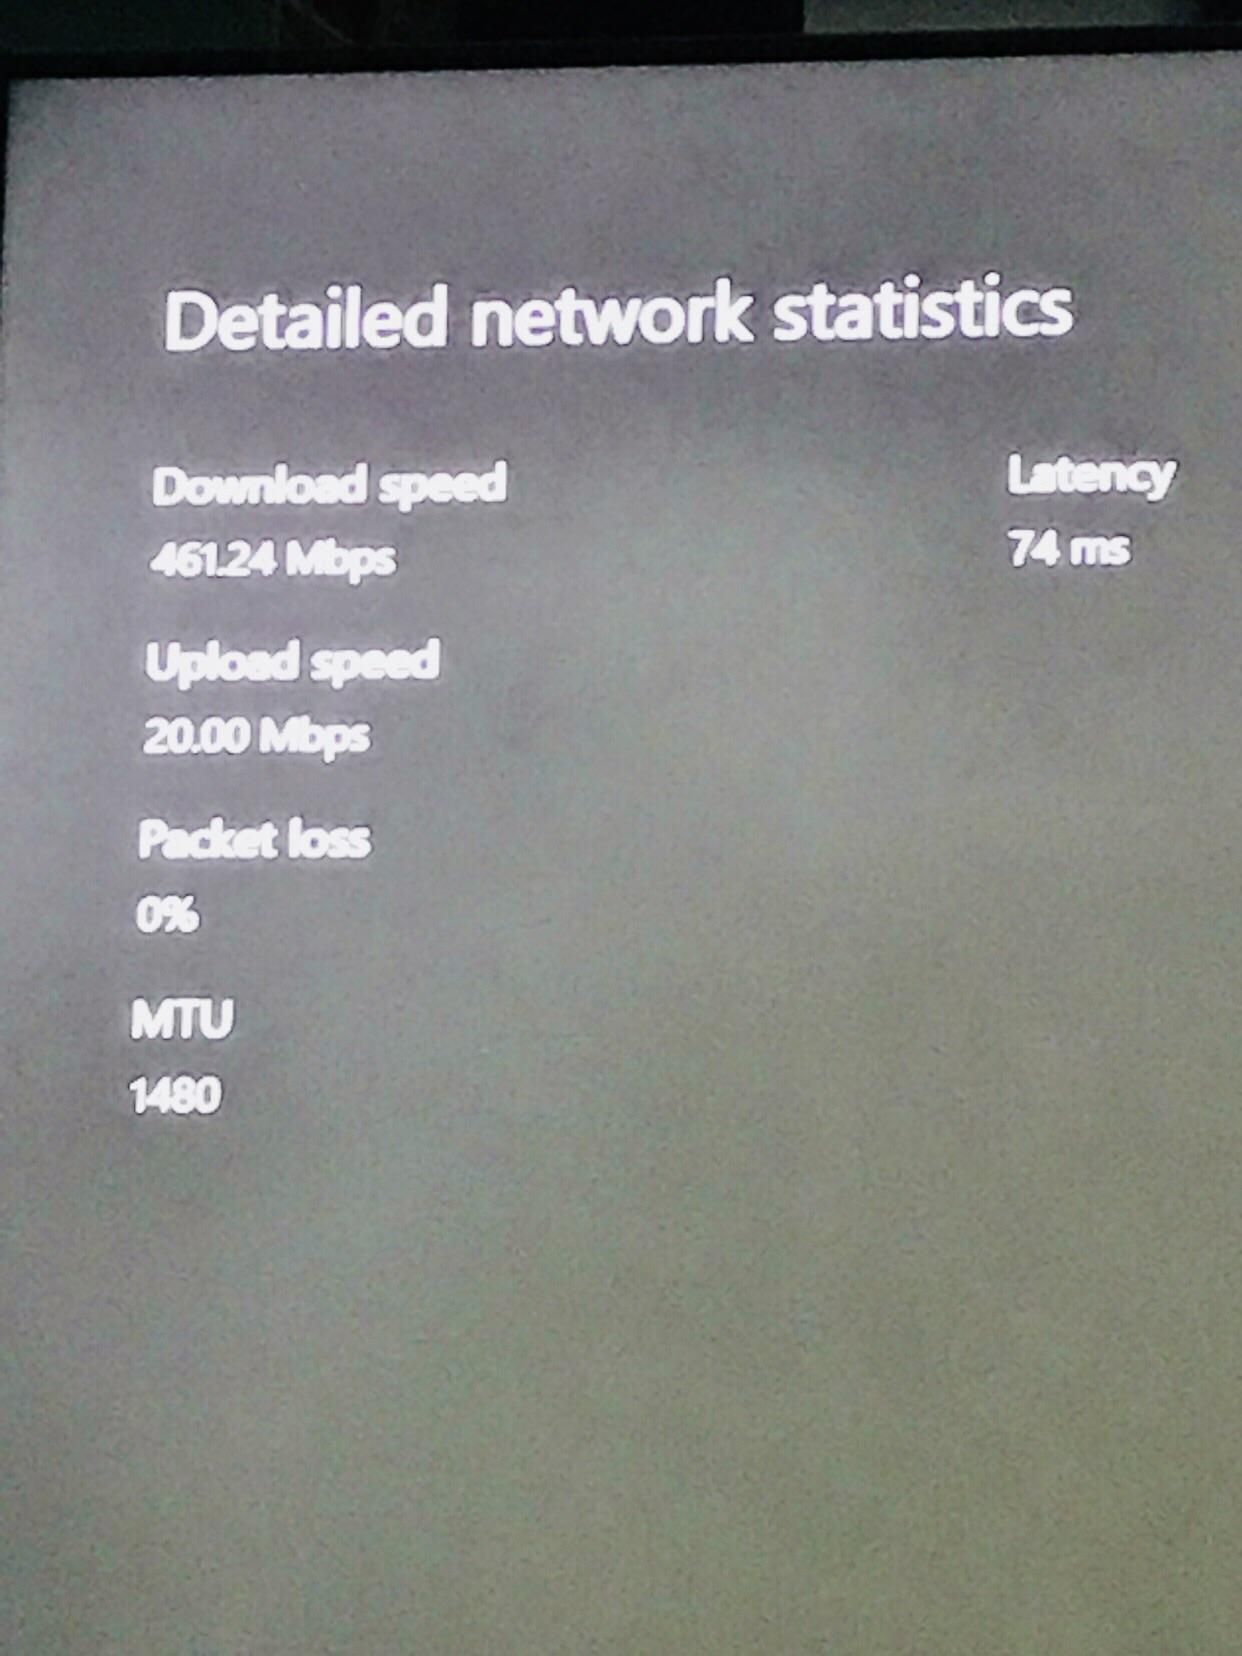 Any tips on bringing g down latency and ping? In Fortnite my ping is